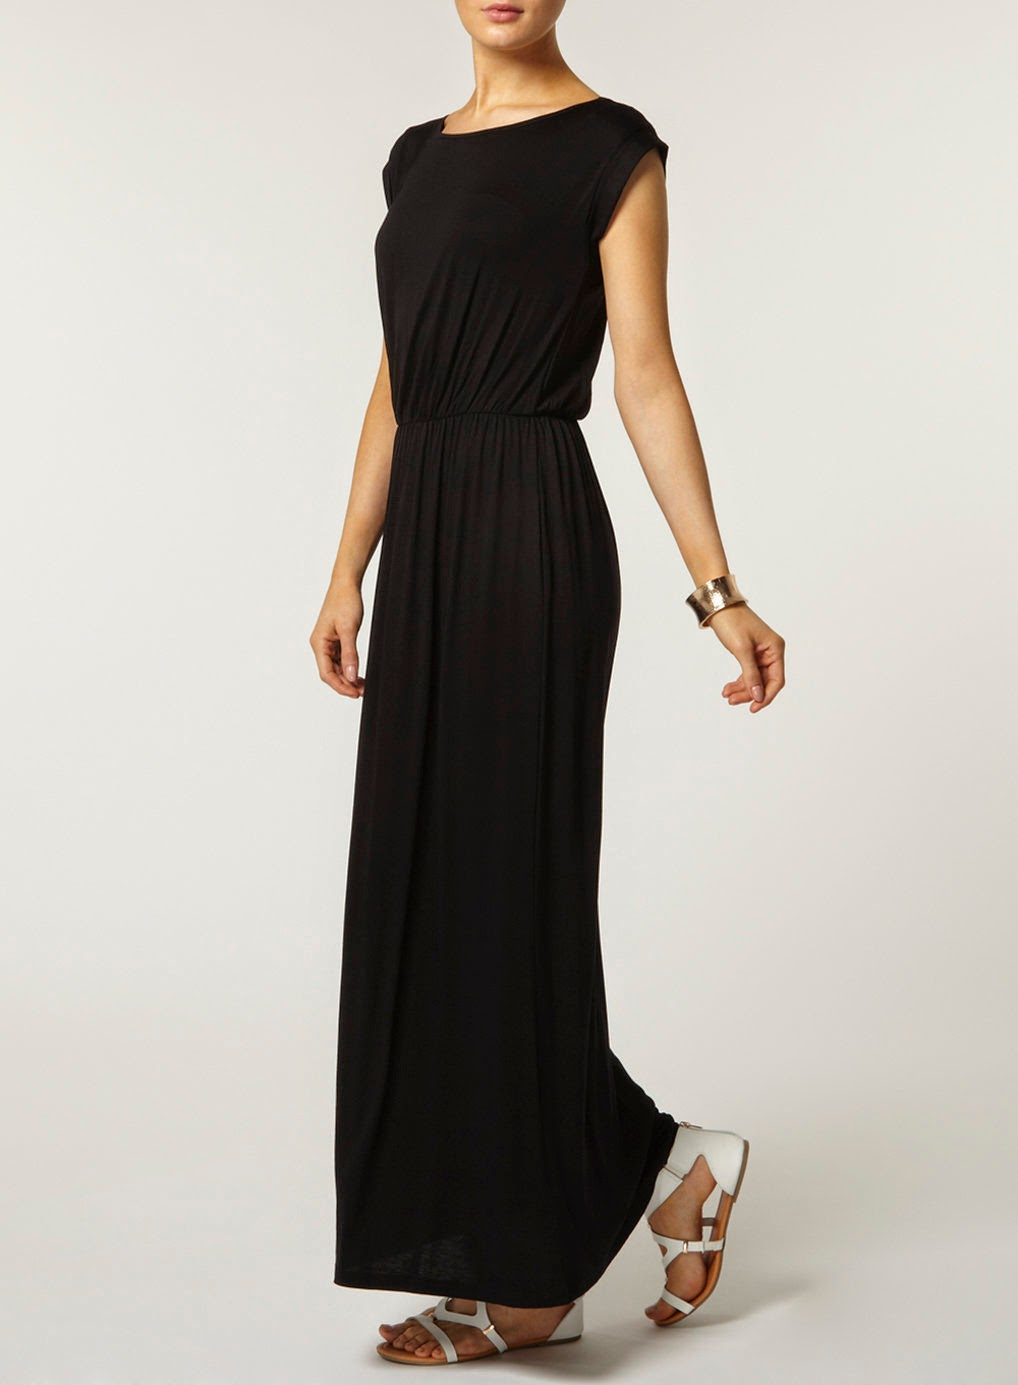 dorothy perkins black maxi dress